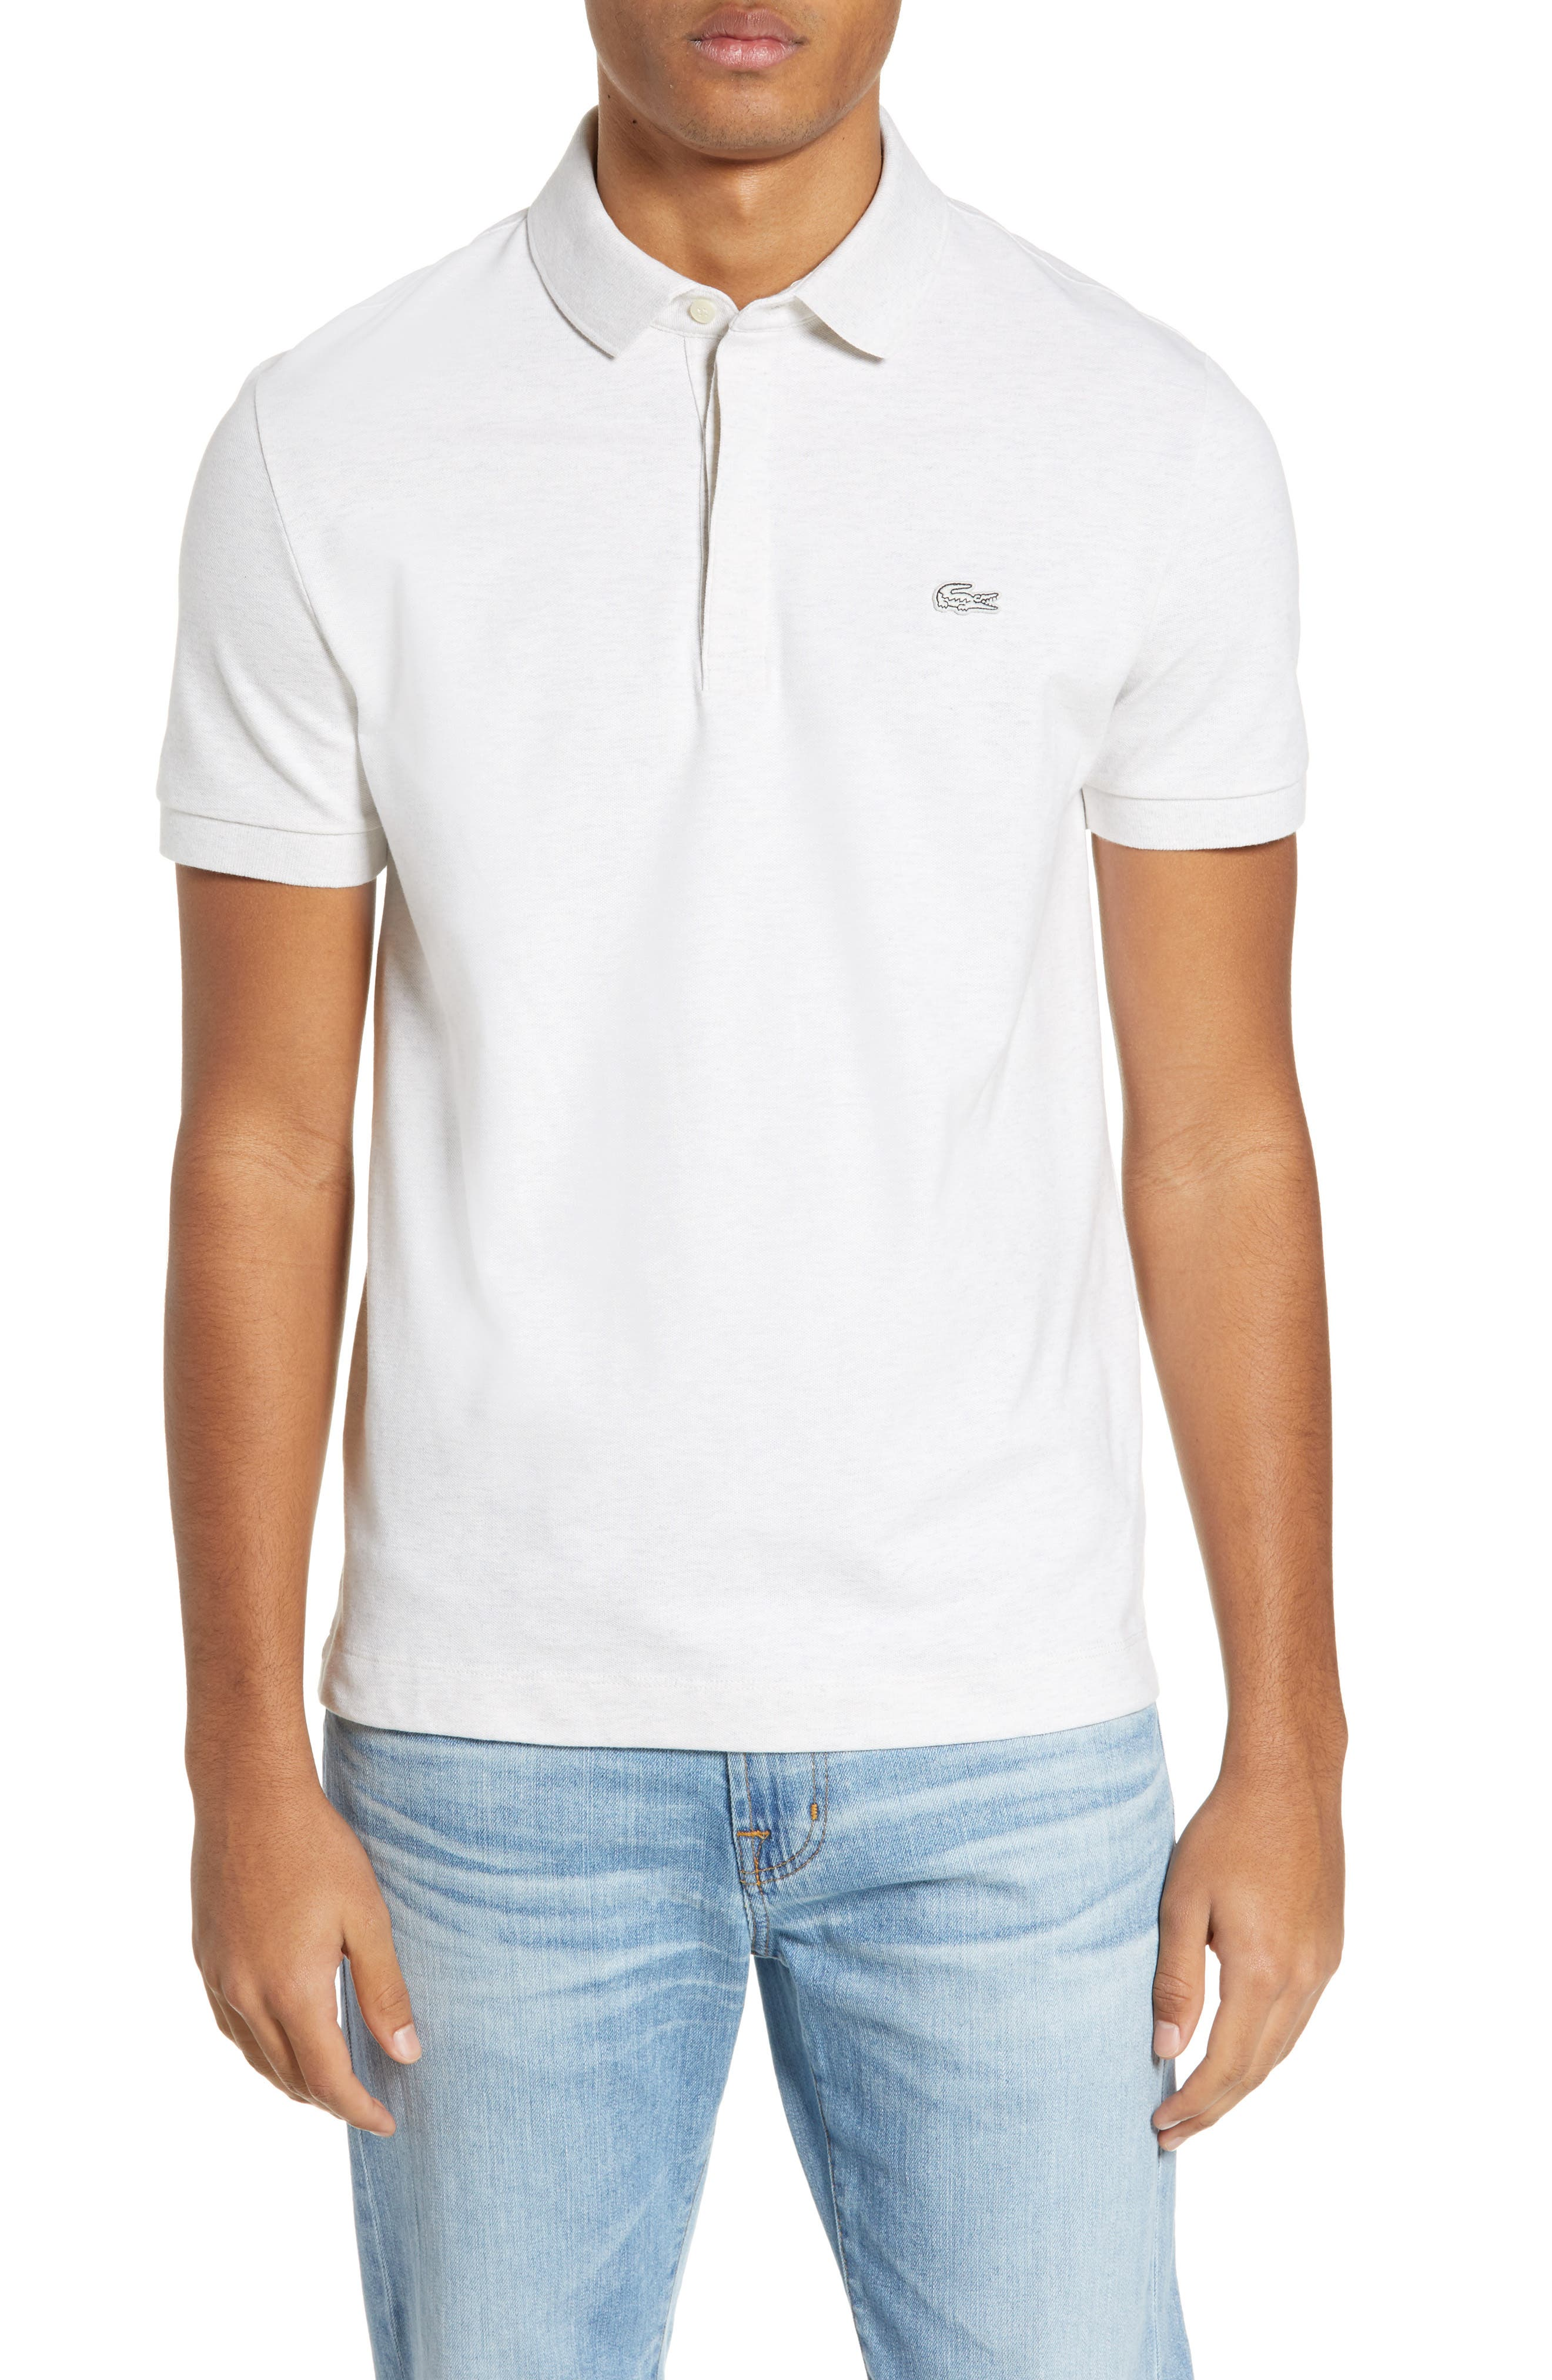 amp; Accessories Nordstrom Clothing Lacoste Shoes Polo Shirts Men's wWFWqXSP